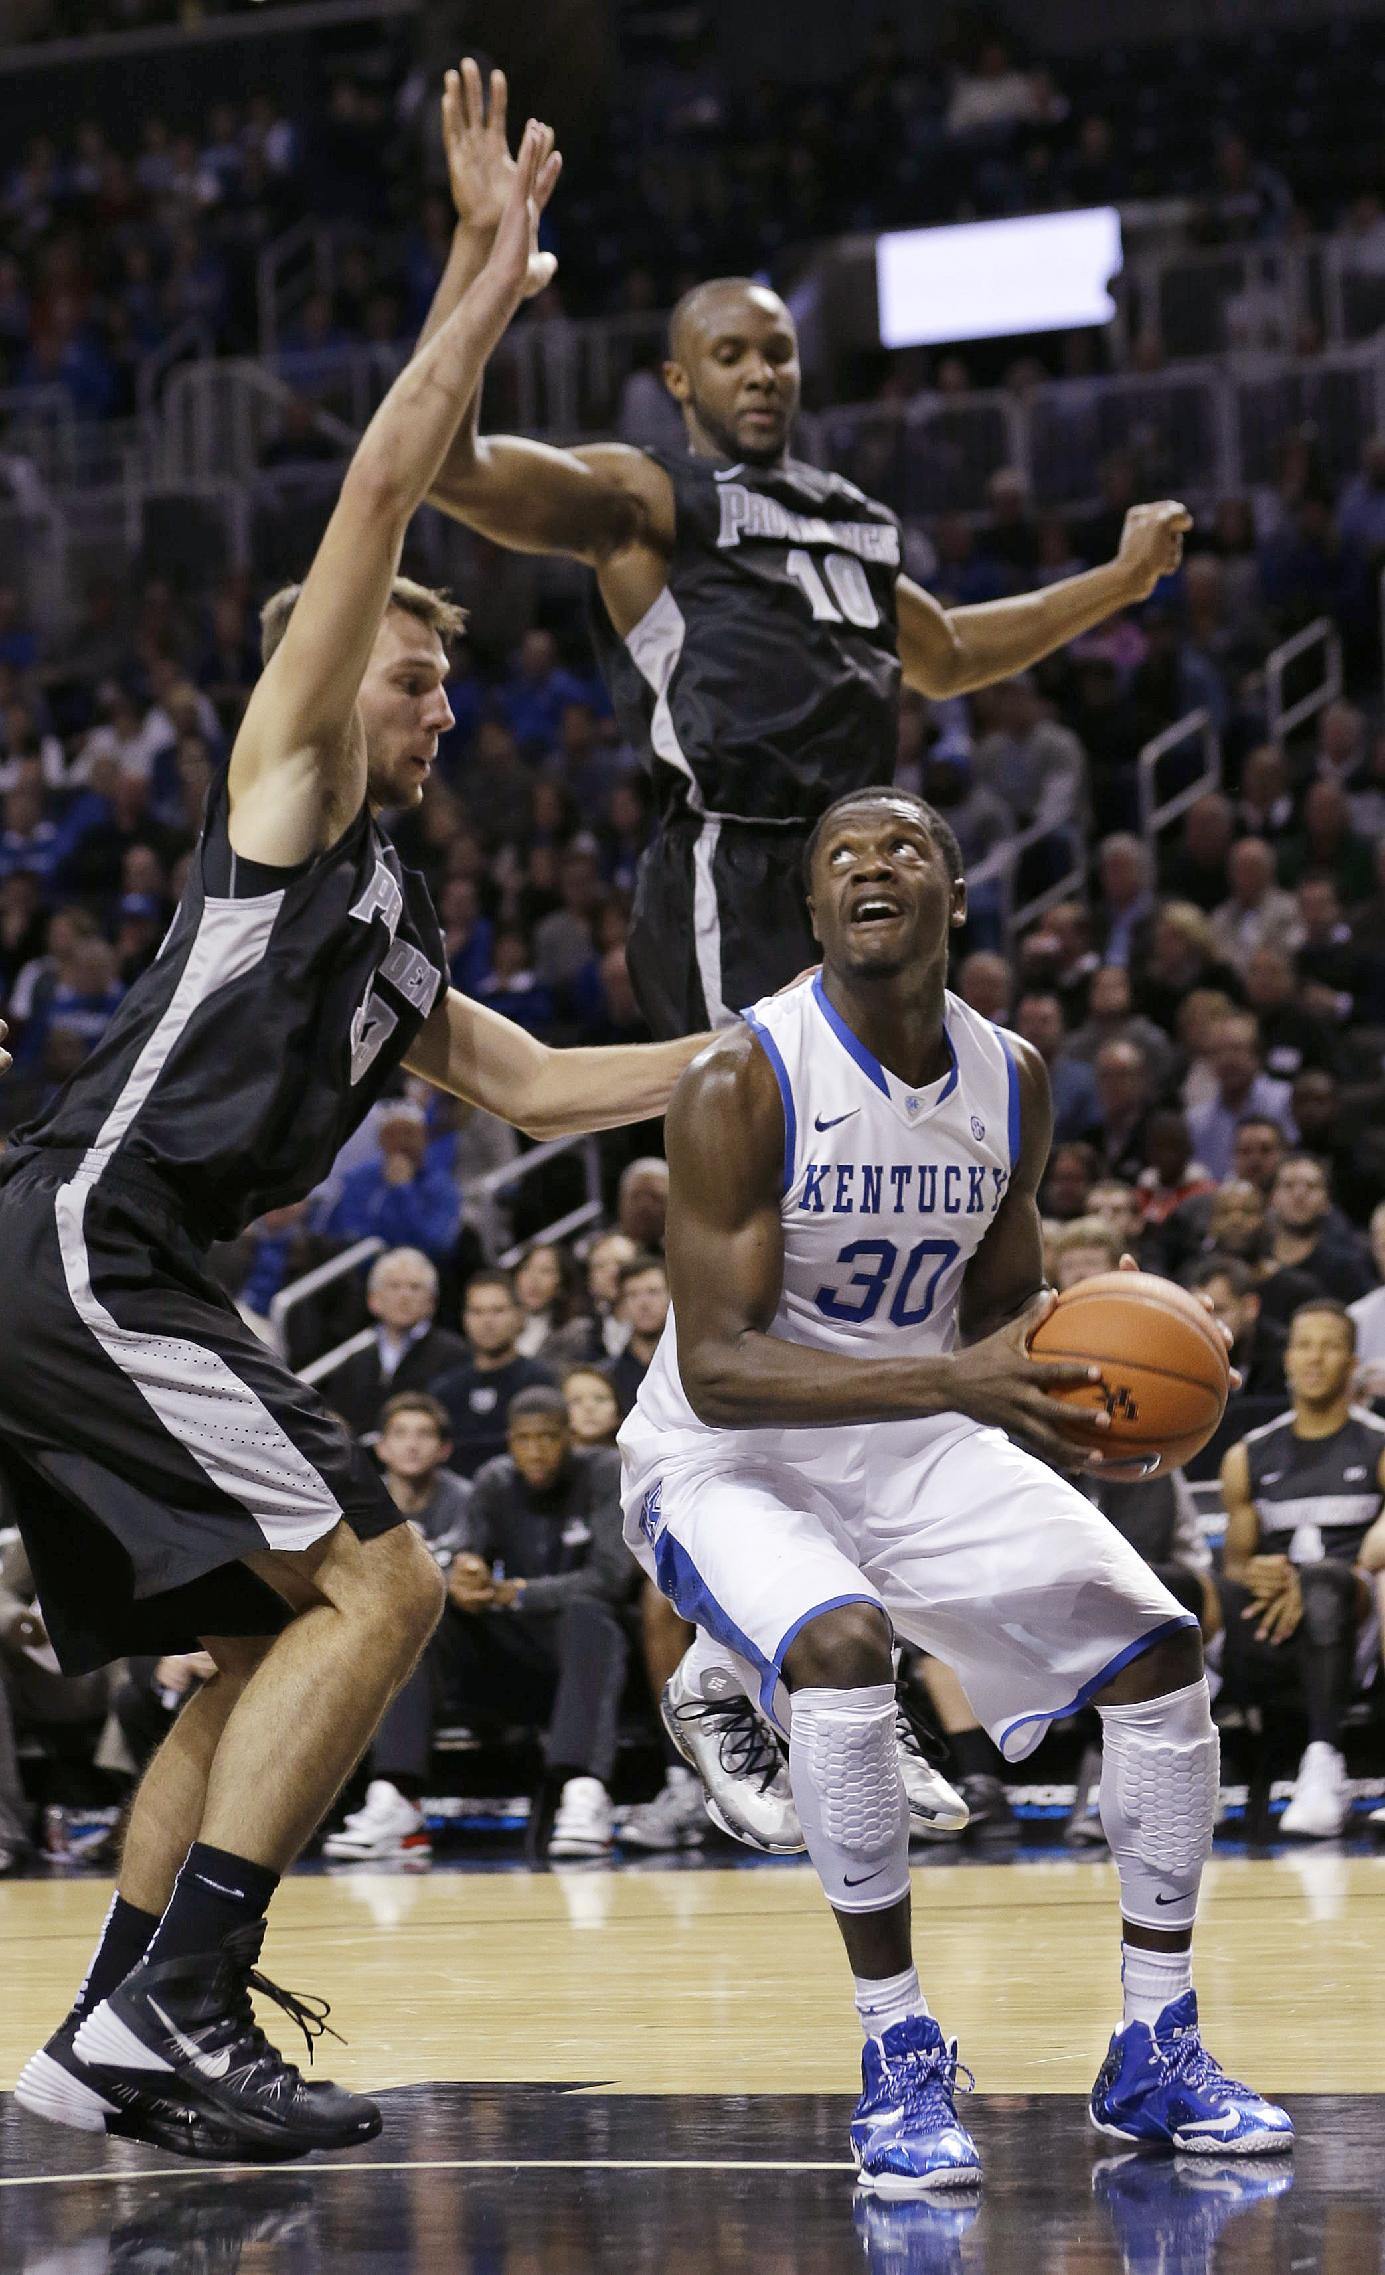 Kentucky's Julius Randle (30) is defended by Providence's Kadeem Batts (10) and Carson Desrosiers (33) during the first half of an NCAA college basketball game Sunday, Dec. 1, 2013, in New York